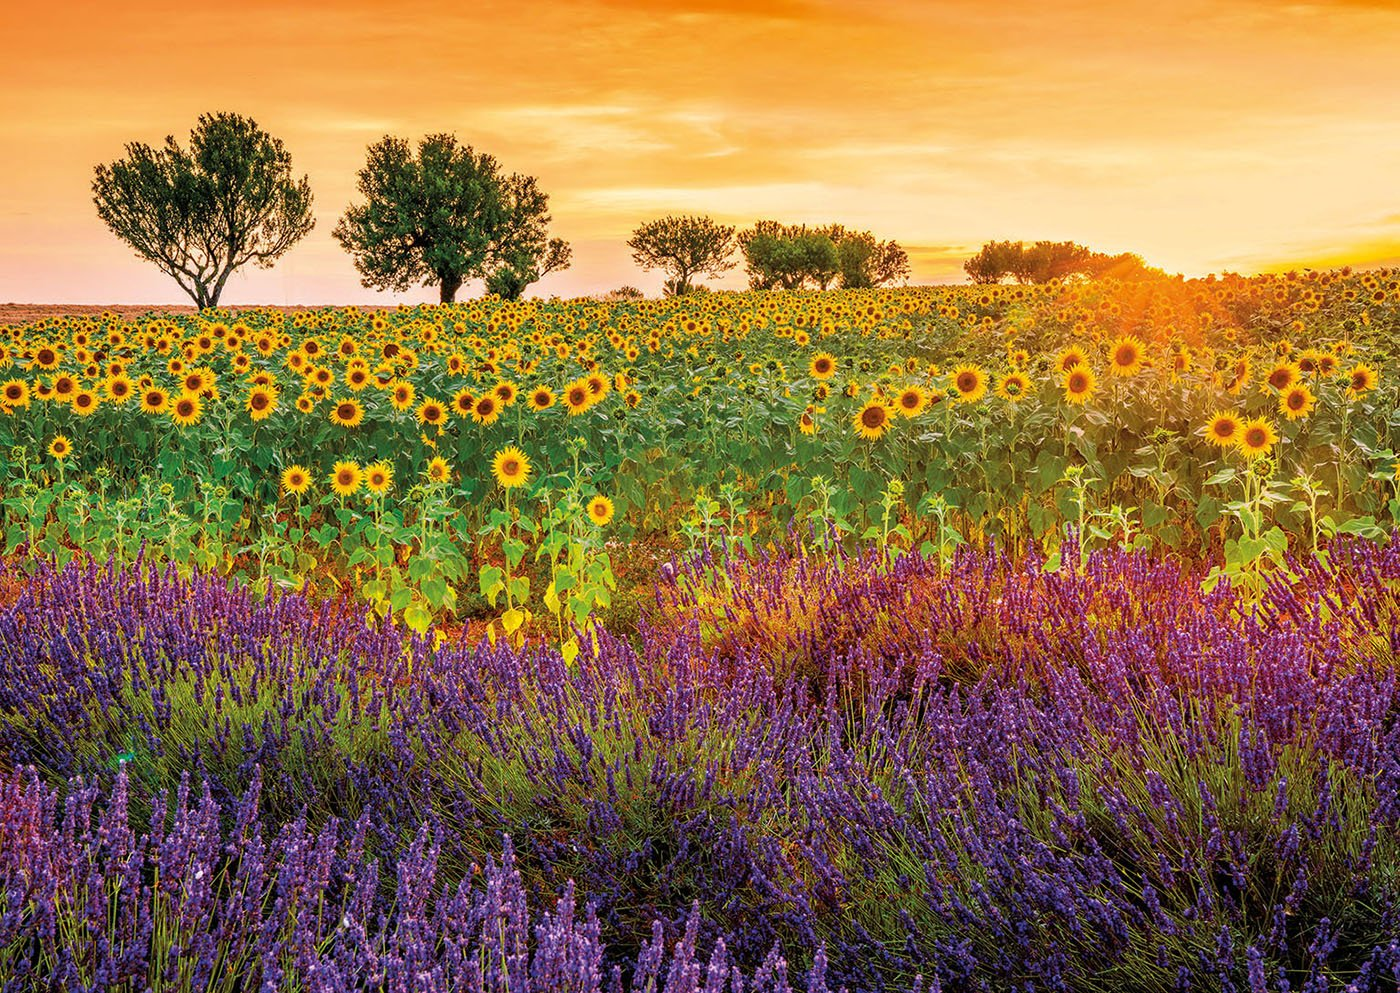 Educa 17669/1500/Field with Sunflowers and Lavender